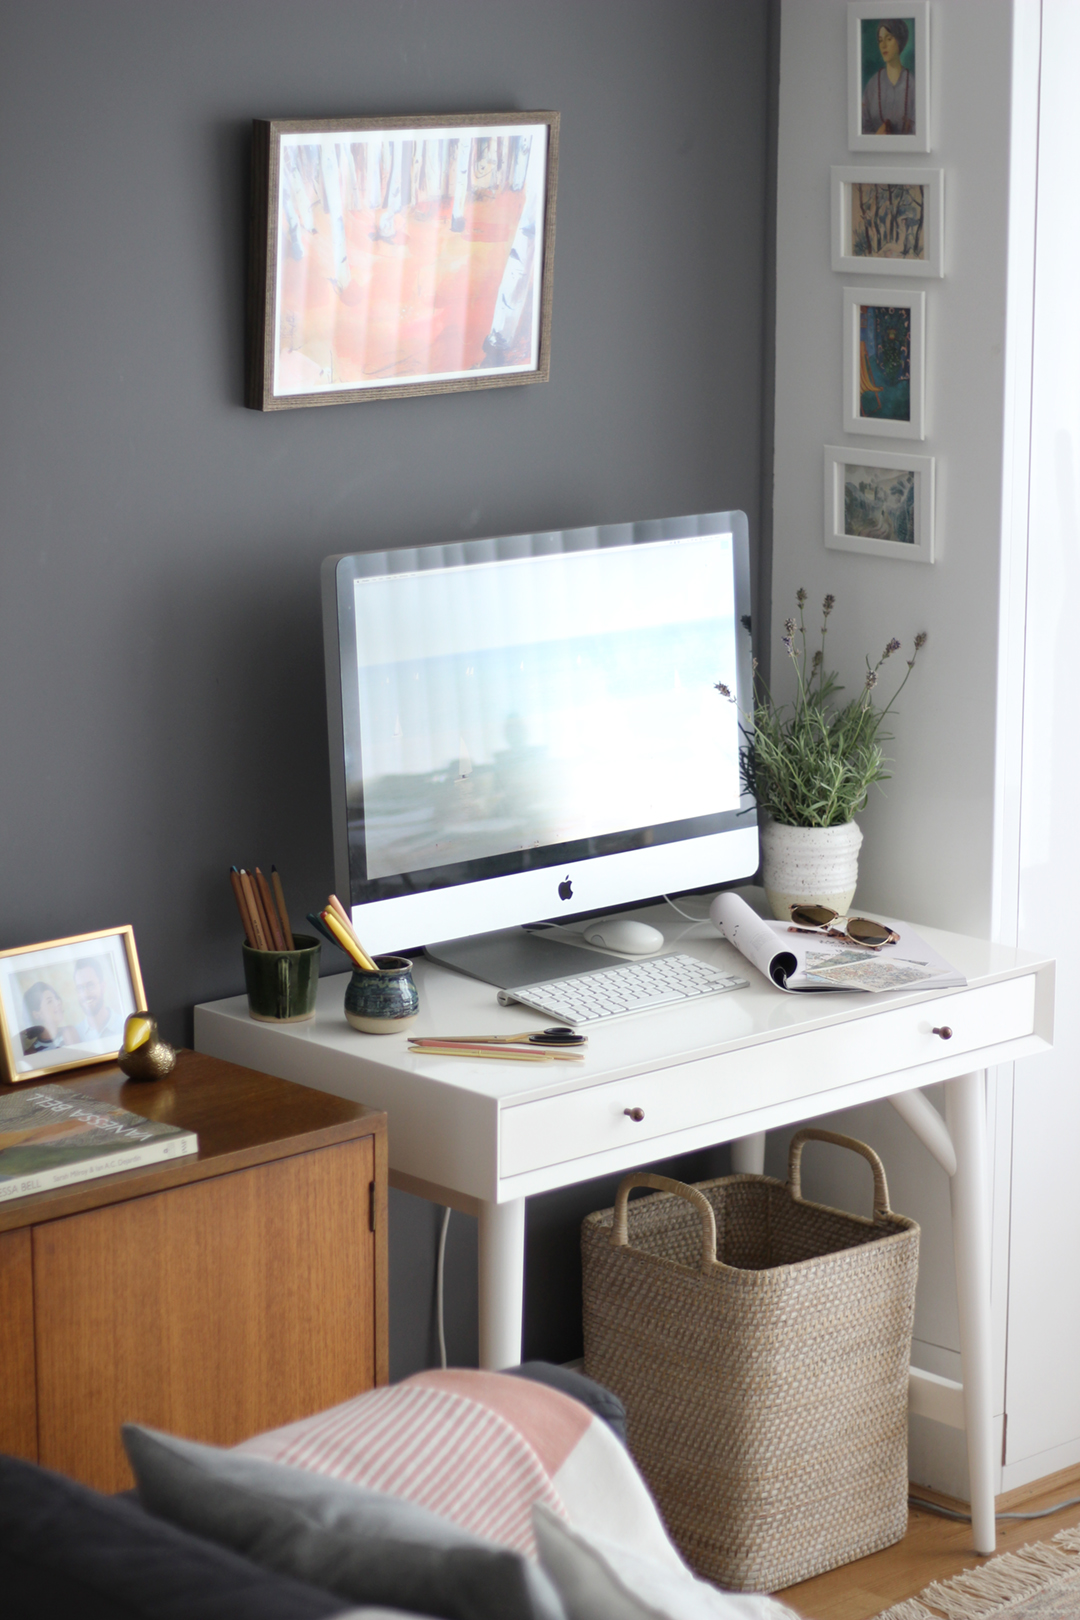 nancy-straughan-interior-stylist-small-office-space.jpg